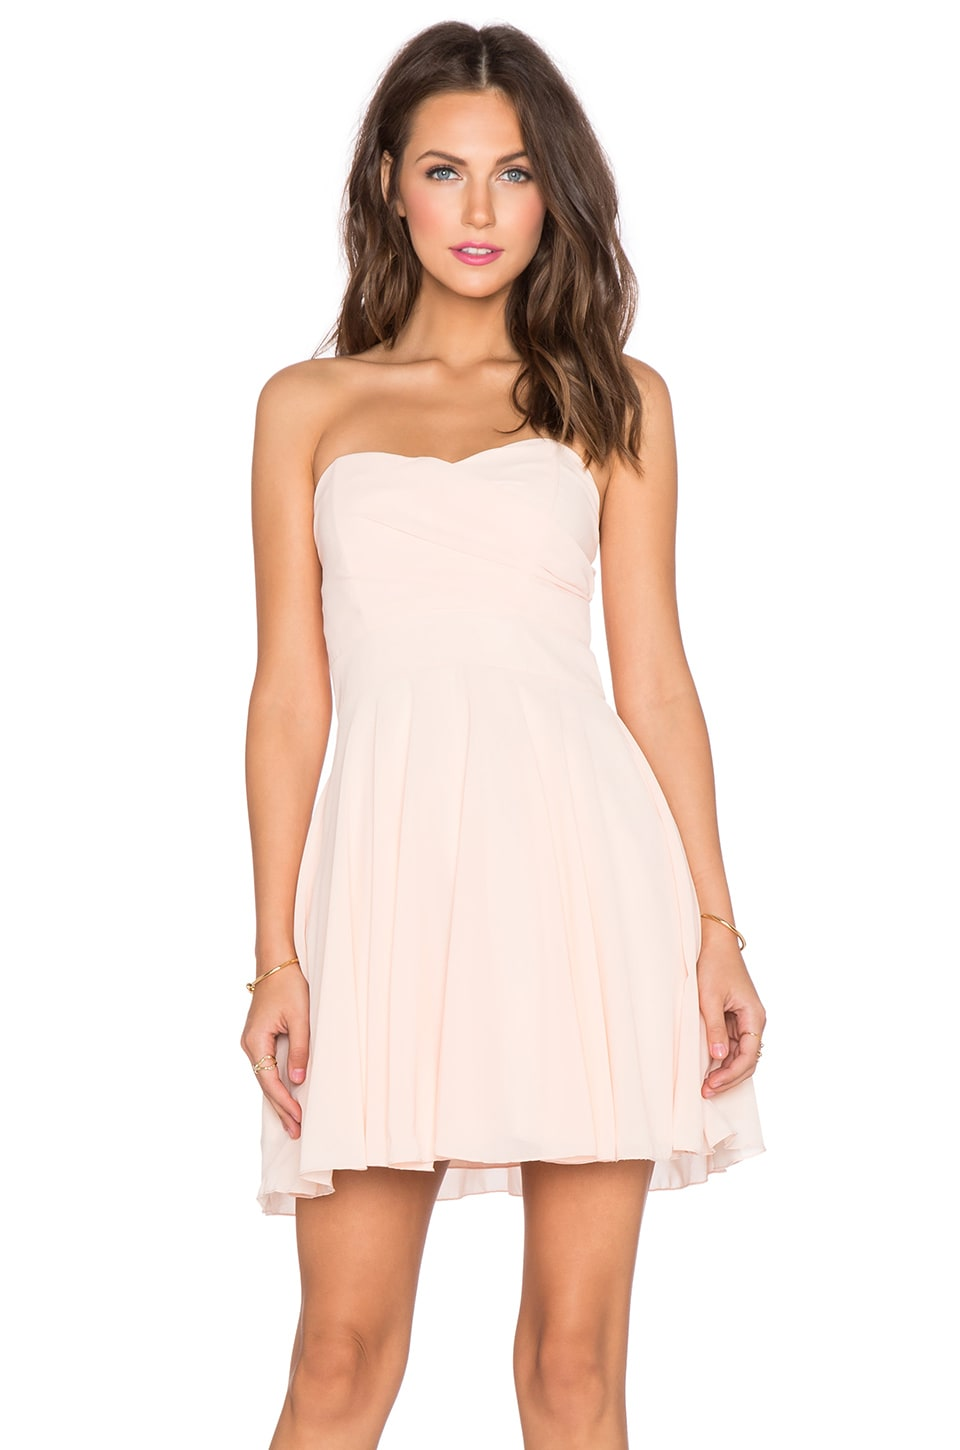 TFNC London Minnie Dress in Blush